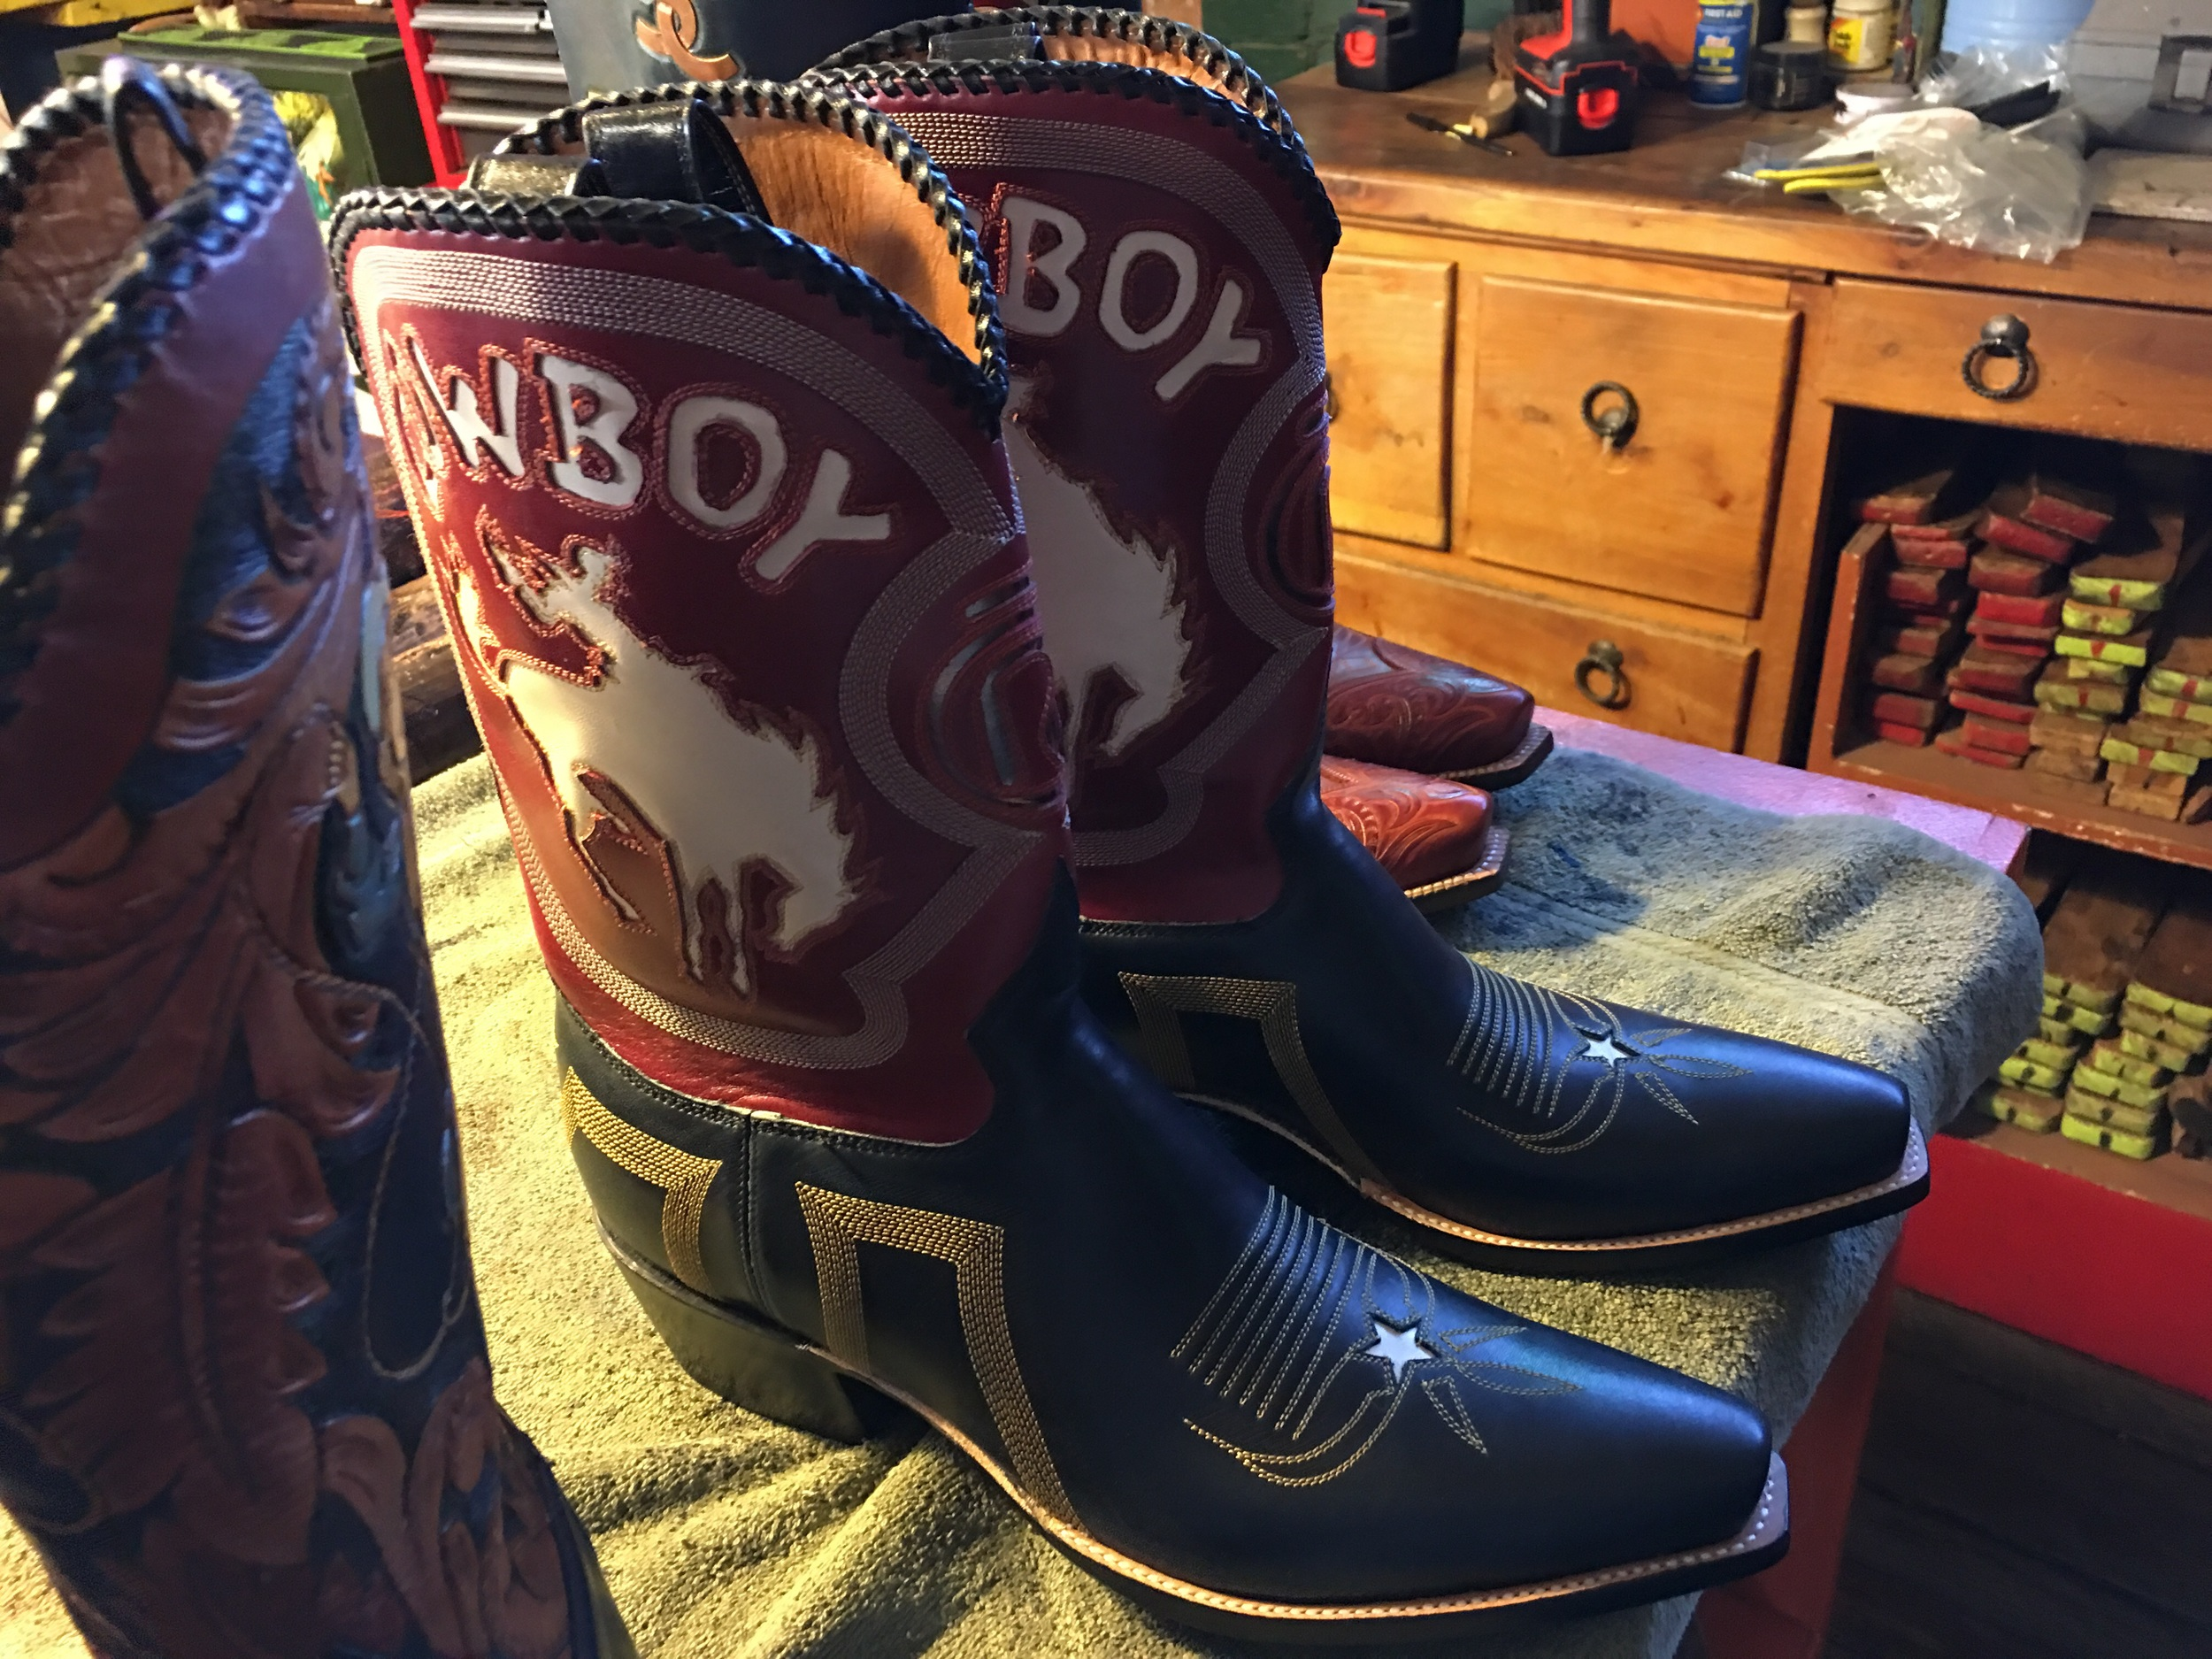 One more pair of Lone Star cowboy boots